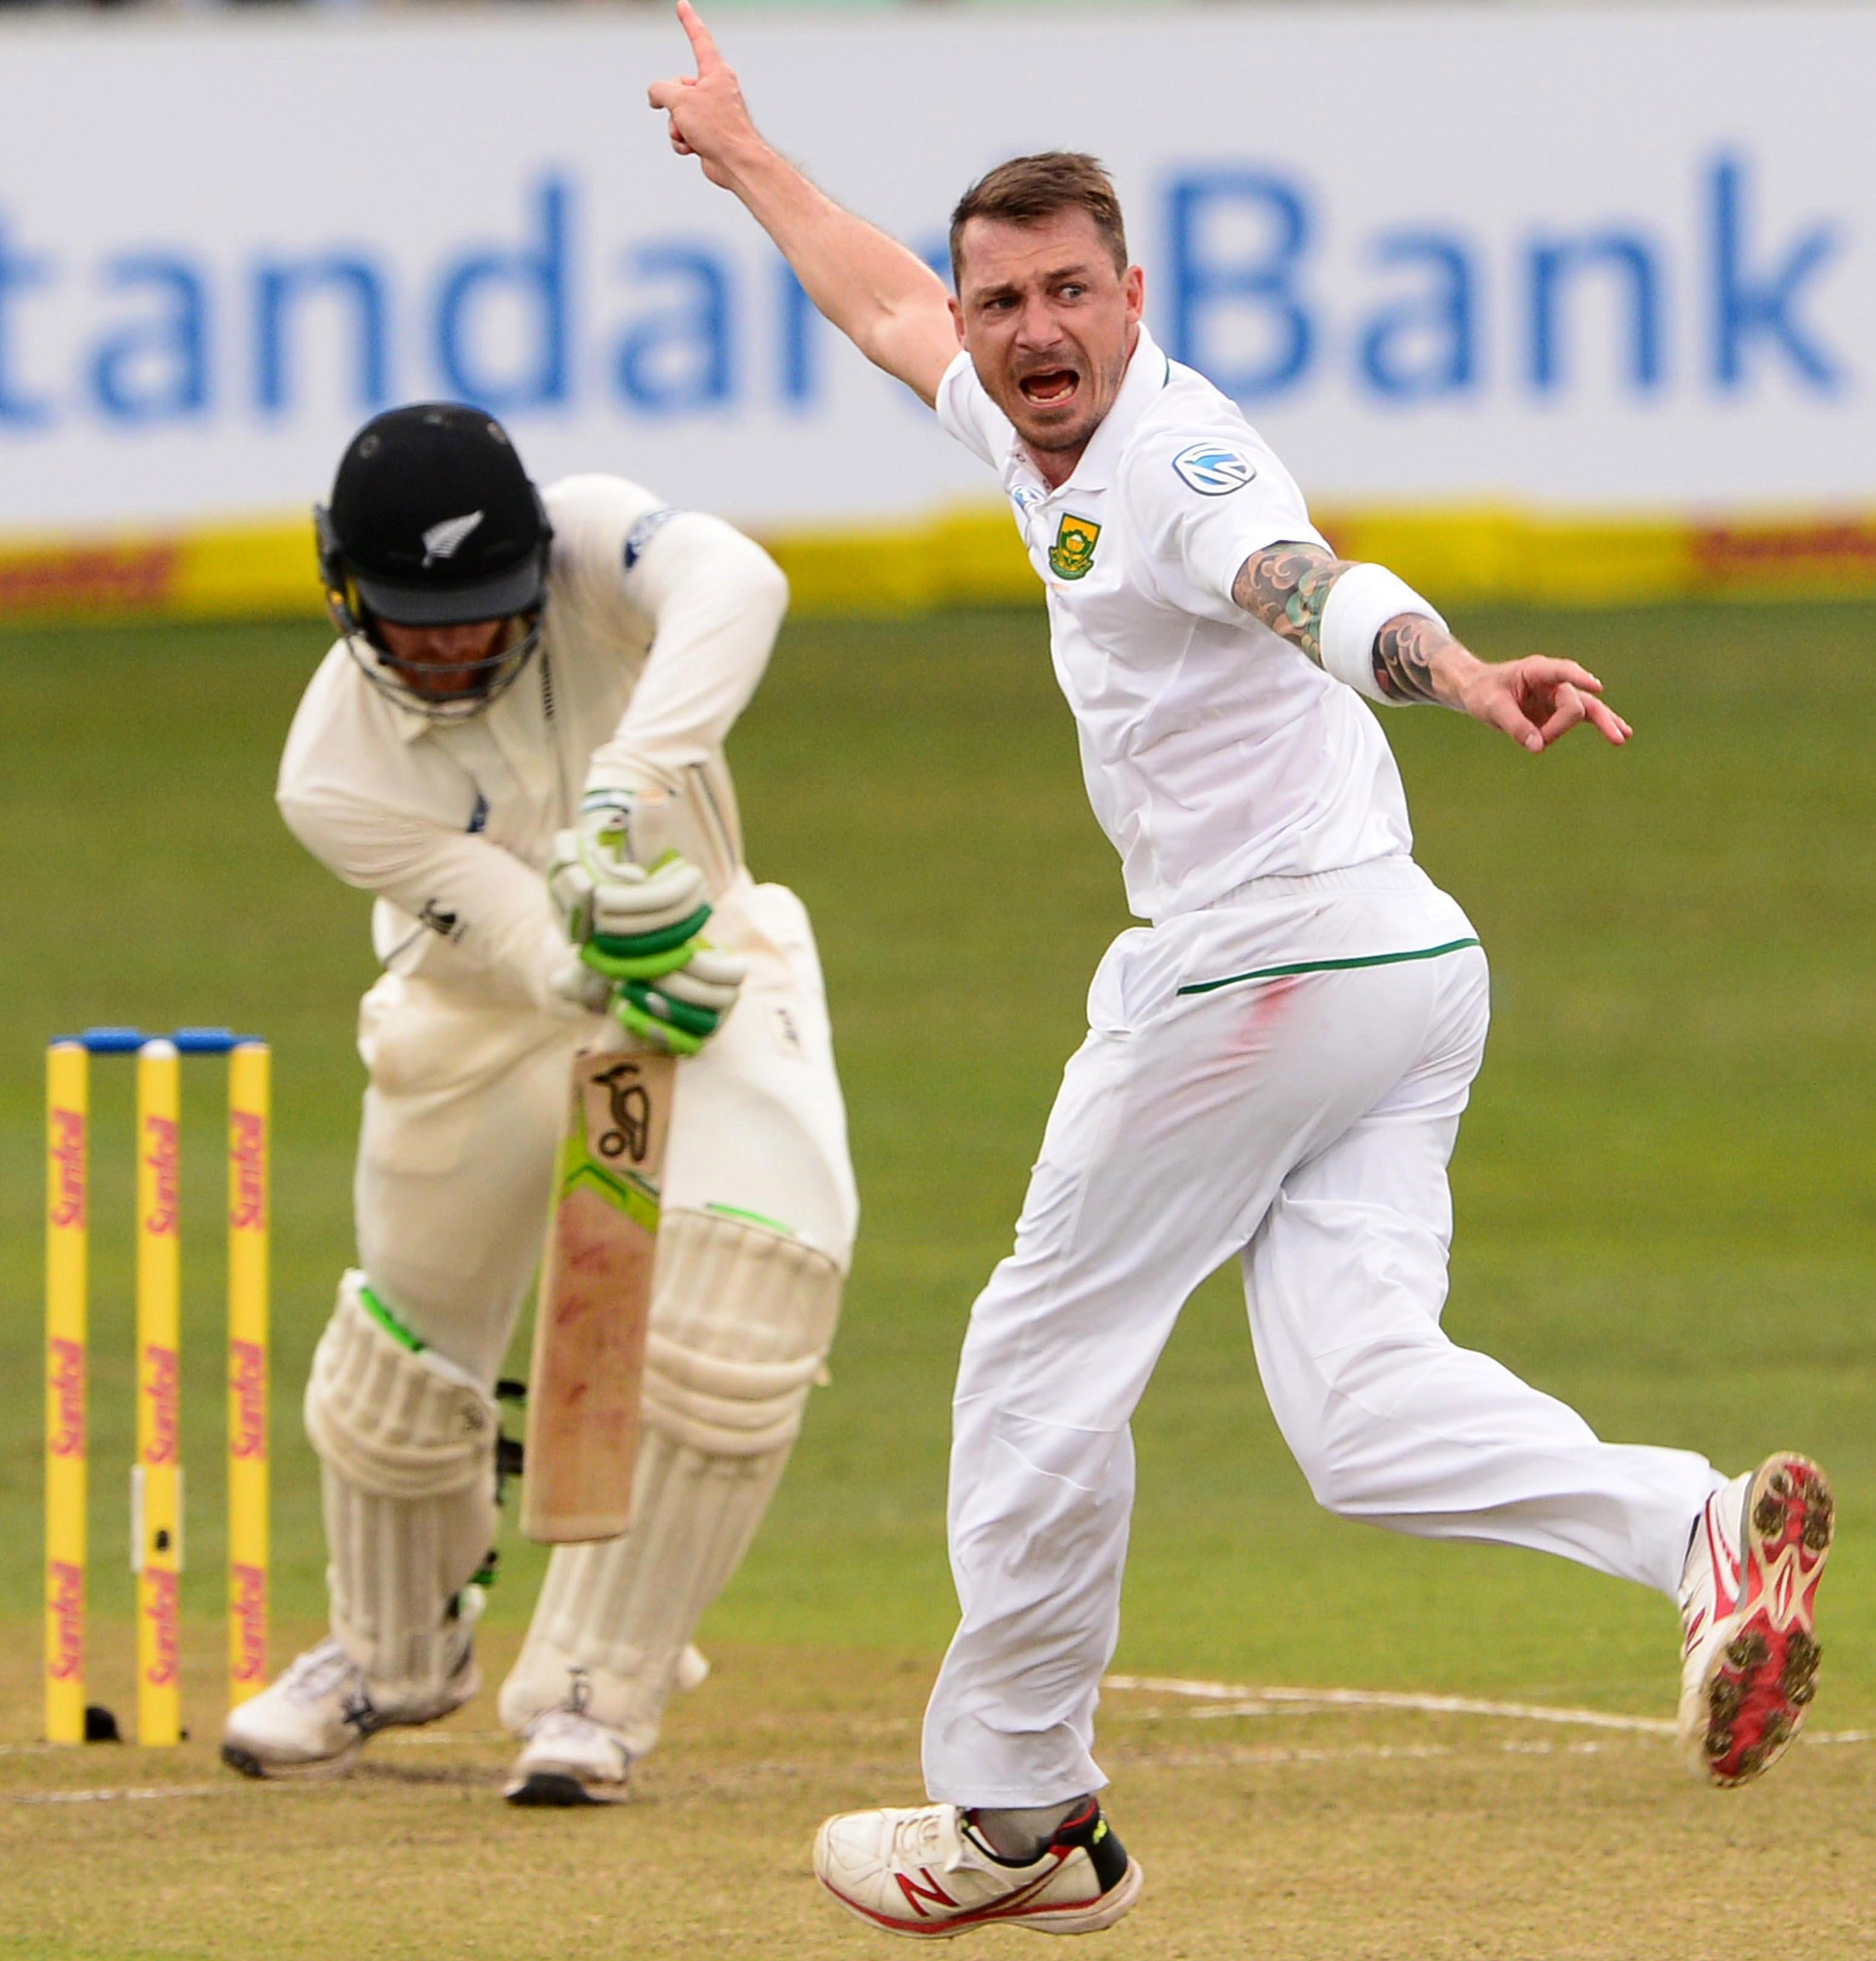 James Anderson also says South African pace ace Dale Steyn was a better bowler